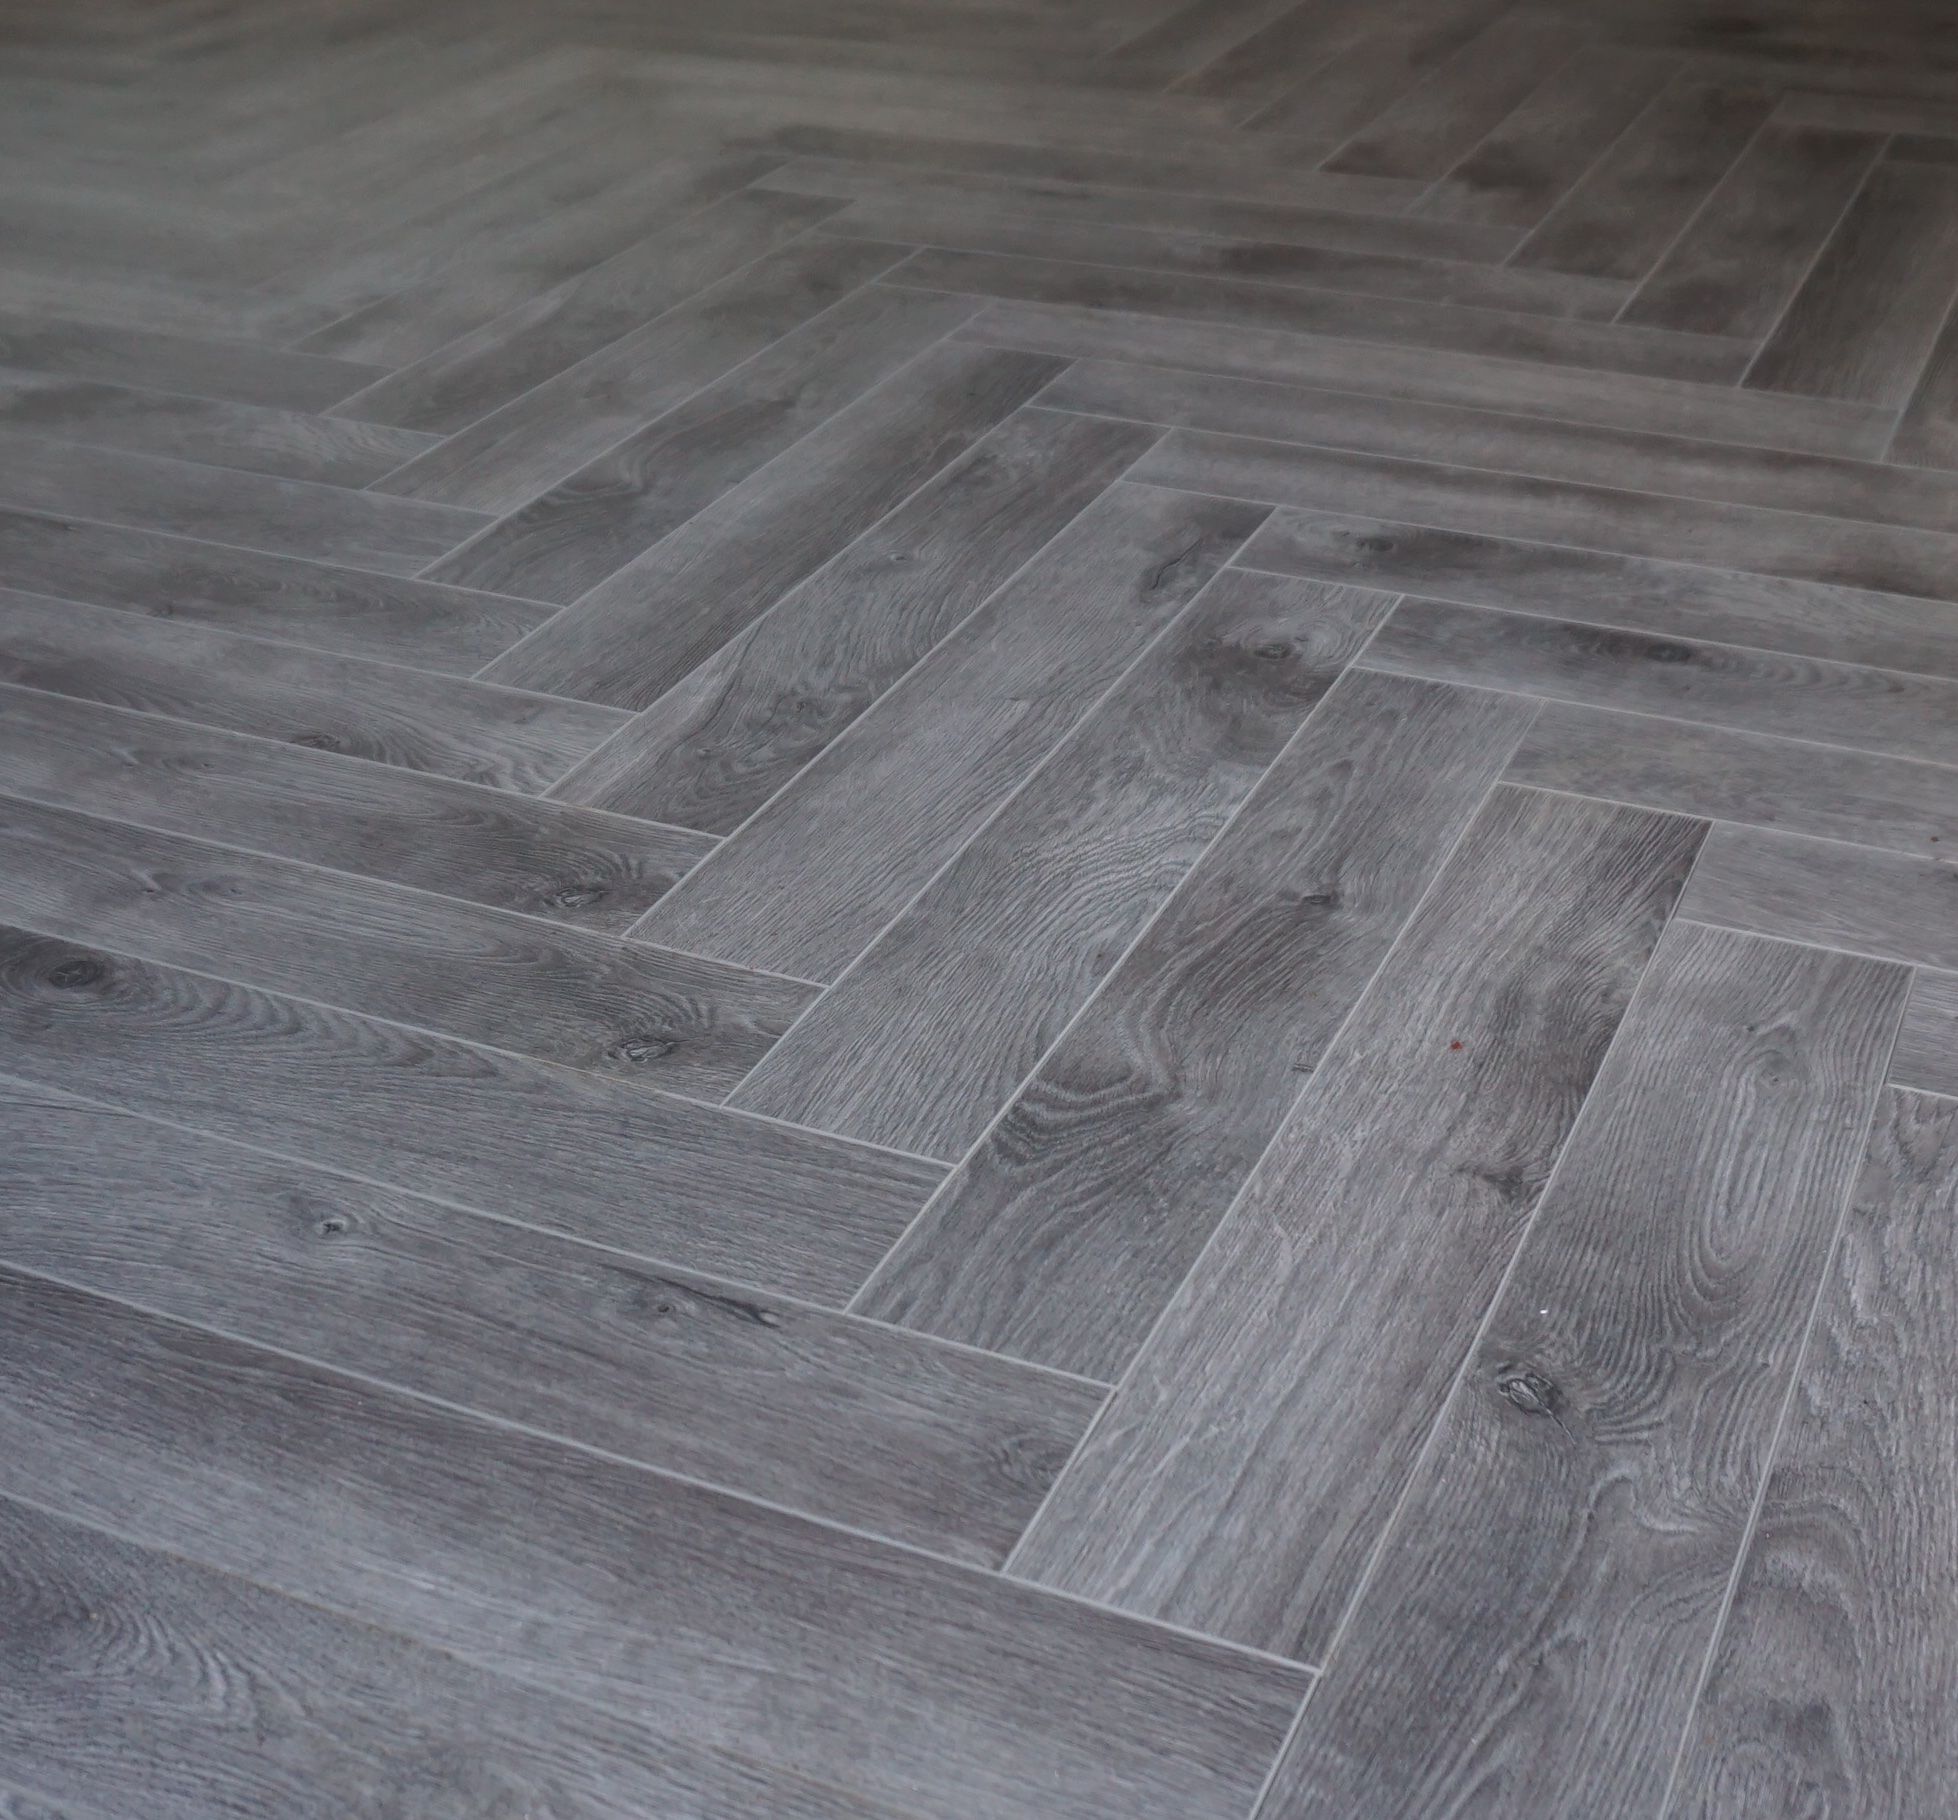 Vivant Vintage Herringbone 12mm Dark Grey Oak 4V Laminate